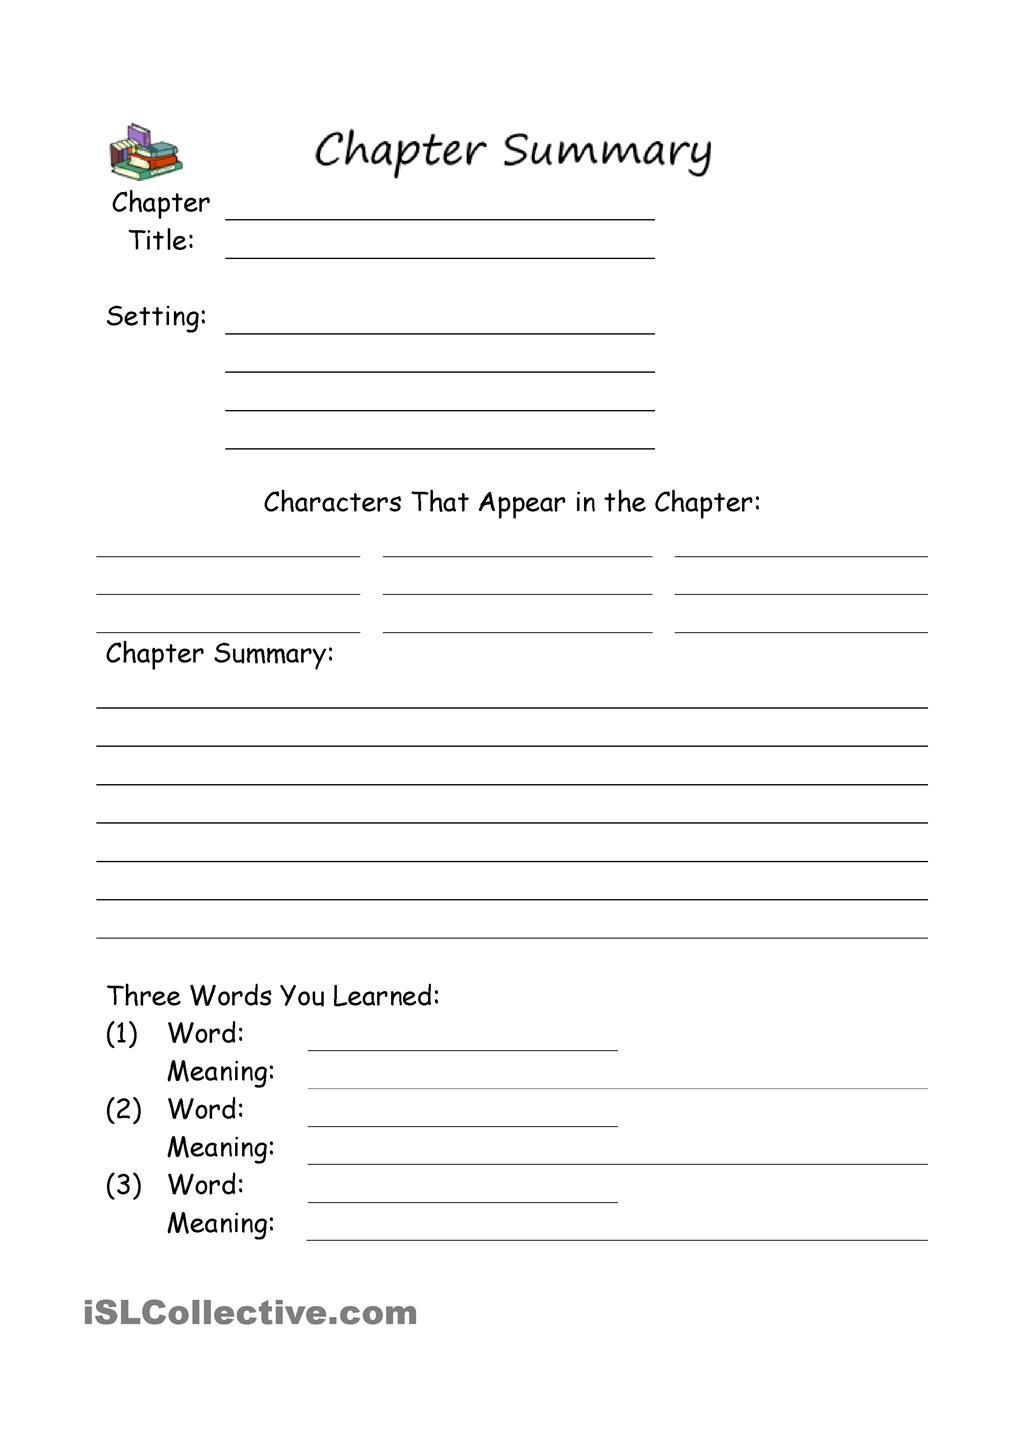 10 Chapter Summary Worksheets ideas  chapter summary, chapter